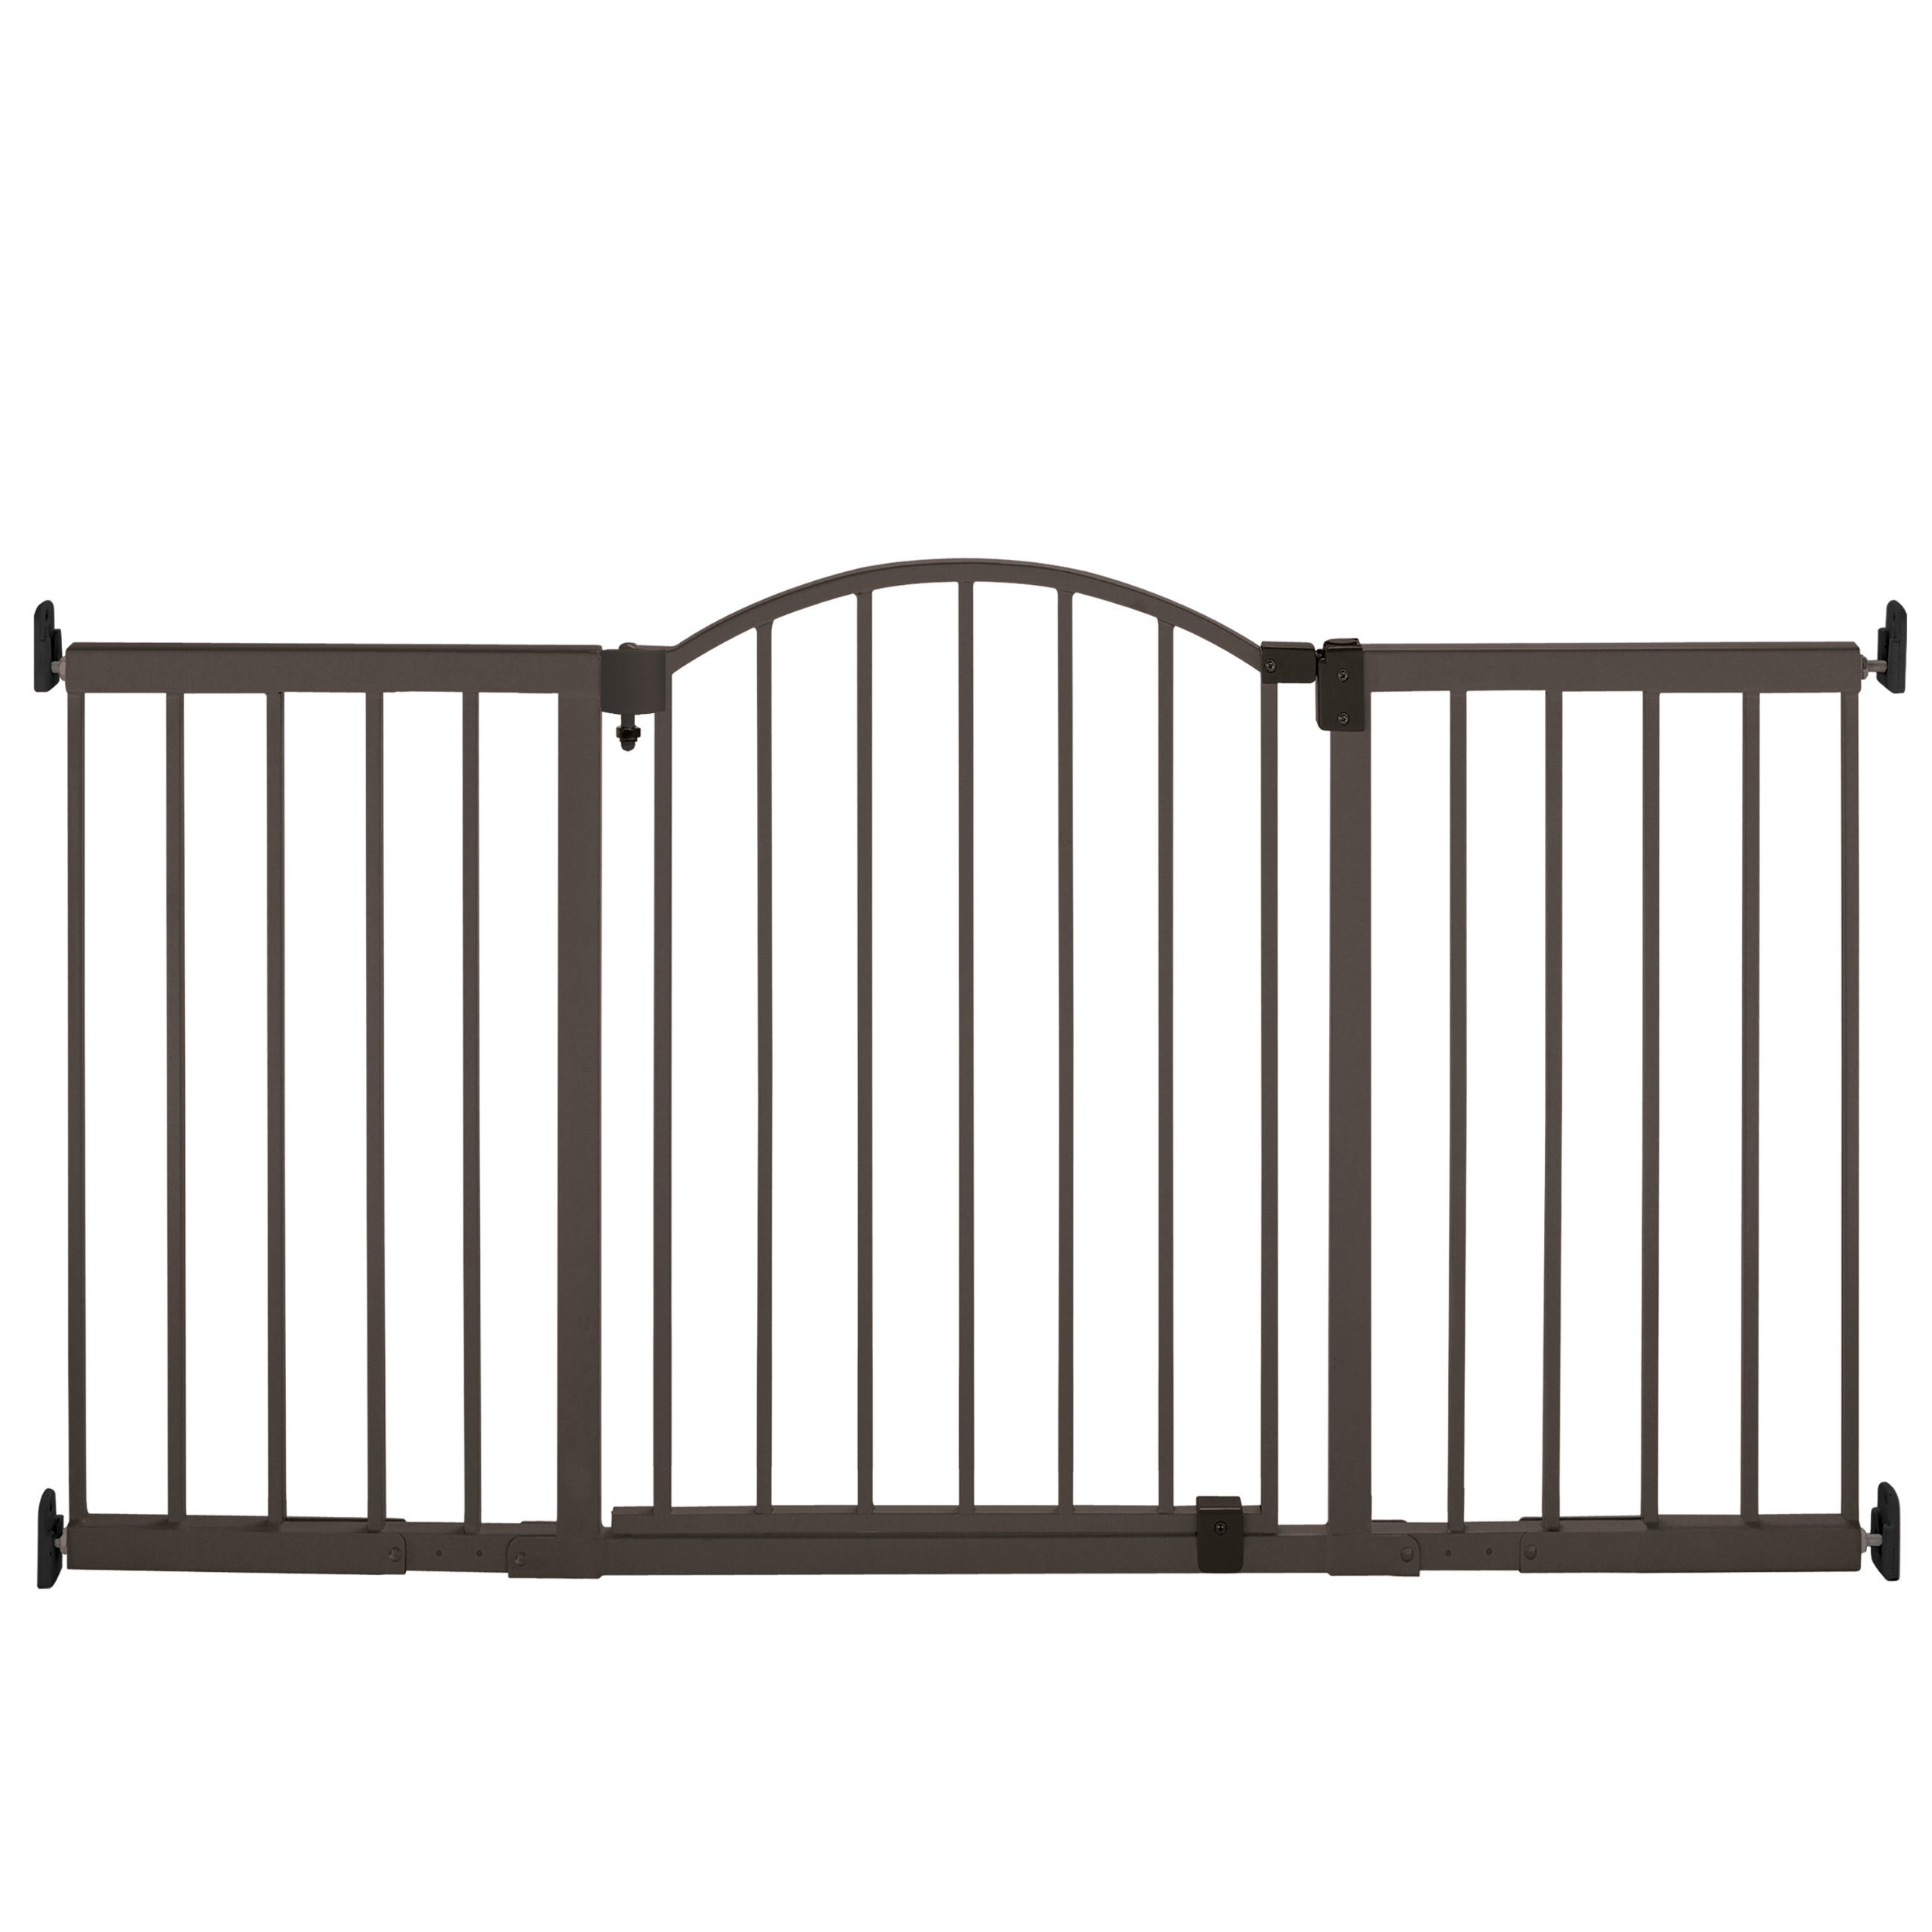 Summer Metal Expansion Gate, 6 Foot Wide Extra Tall Walk-Thru by Summer Infant